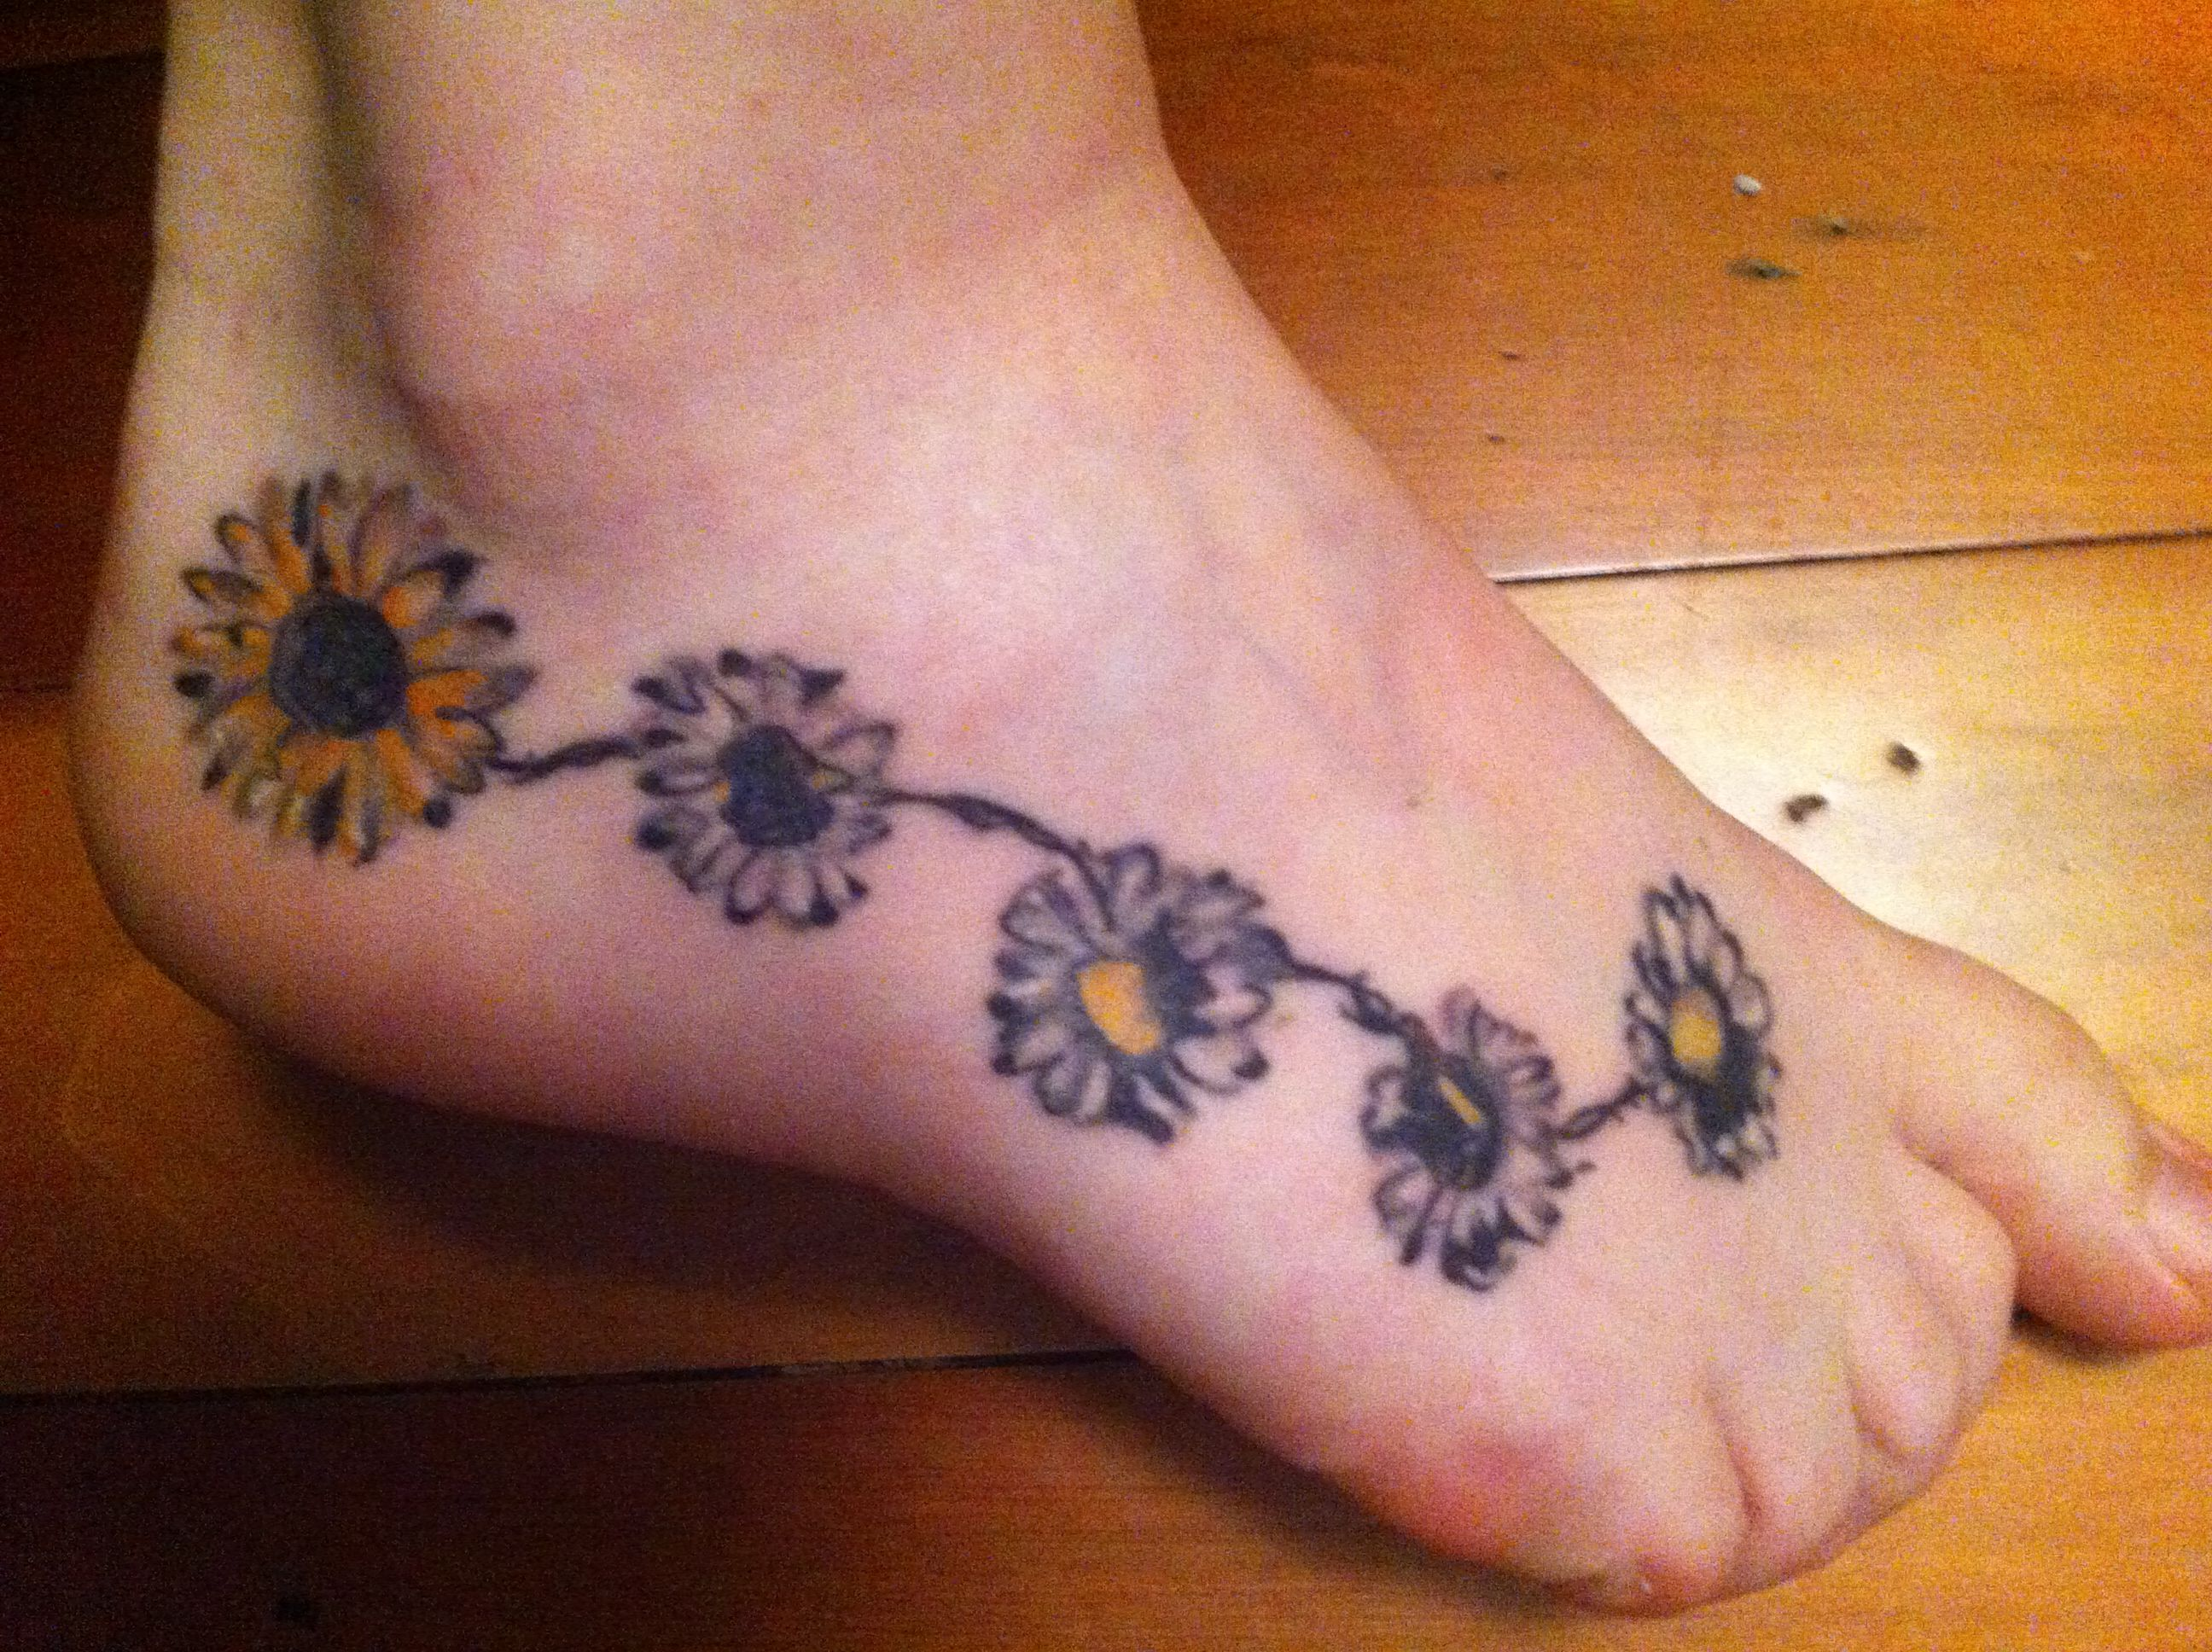 Daisy chain and sunflower tattoo Flower tattoo foot